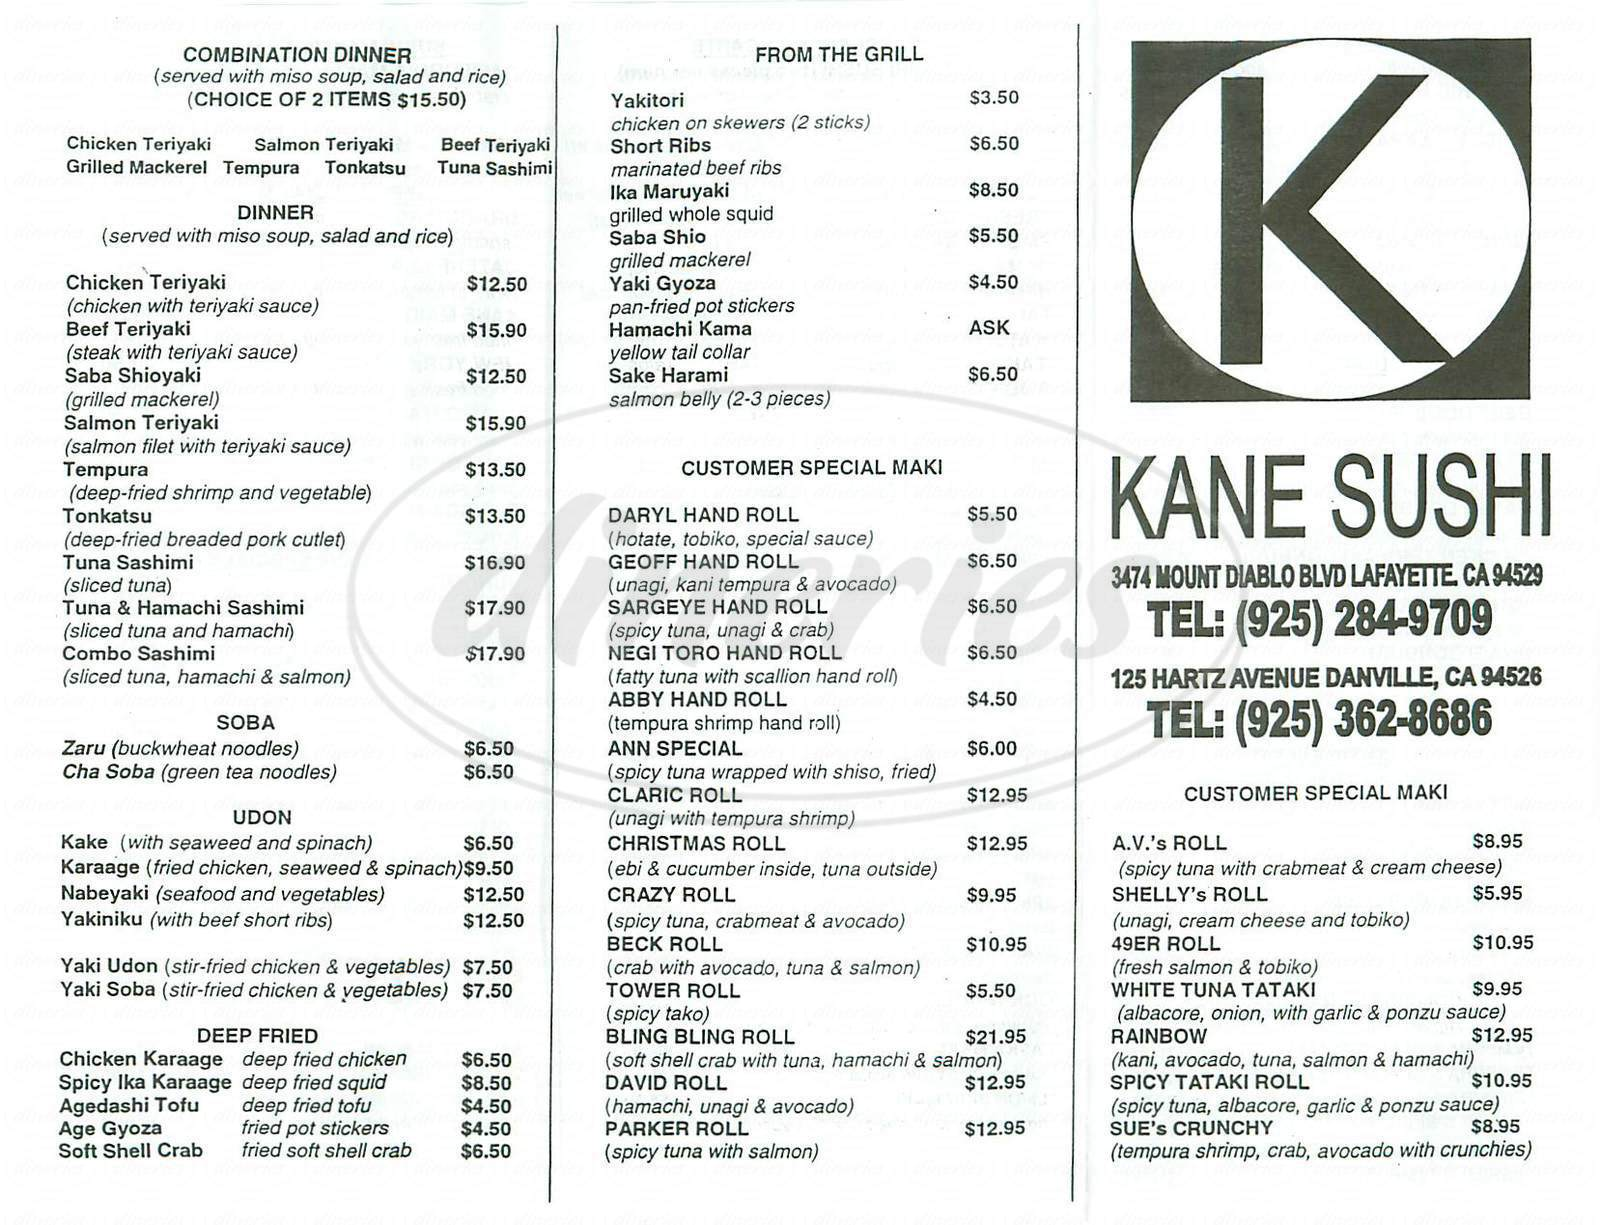 menu for Kane Sushi